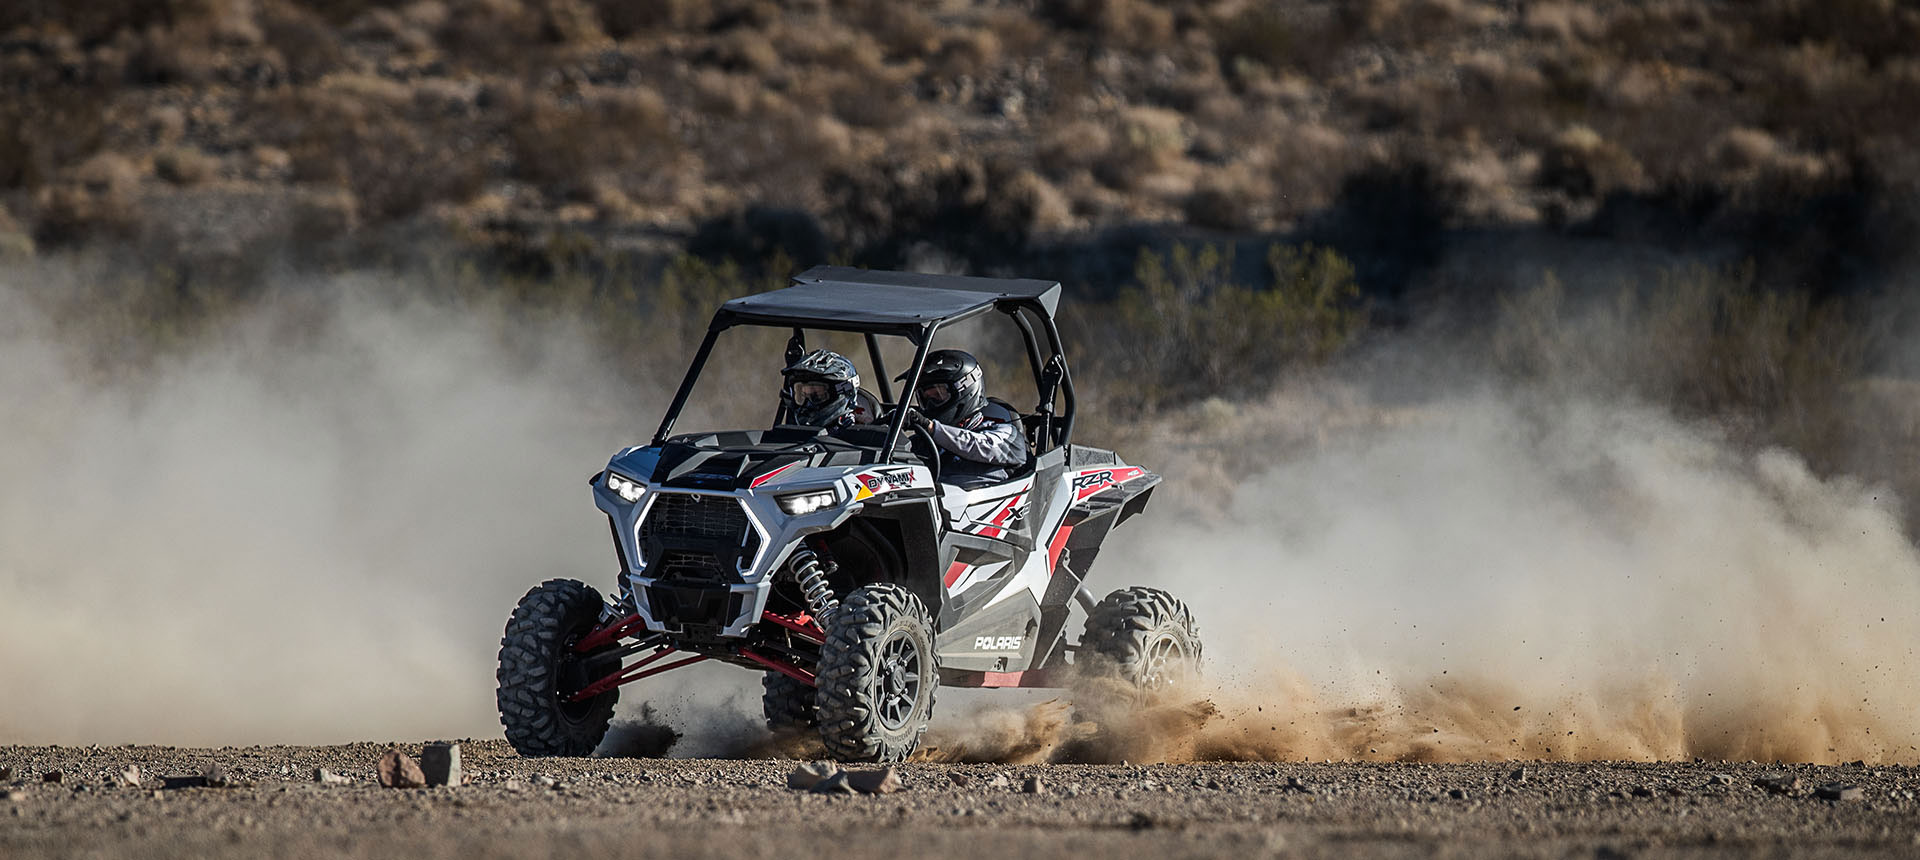 2019 Polaris RZR XP 1000 in Freeport, Florida - Photo 2